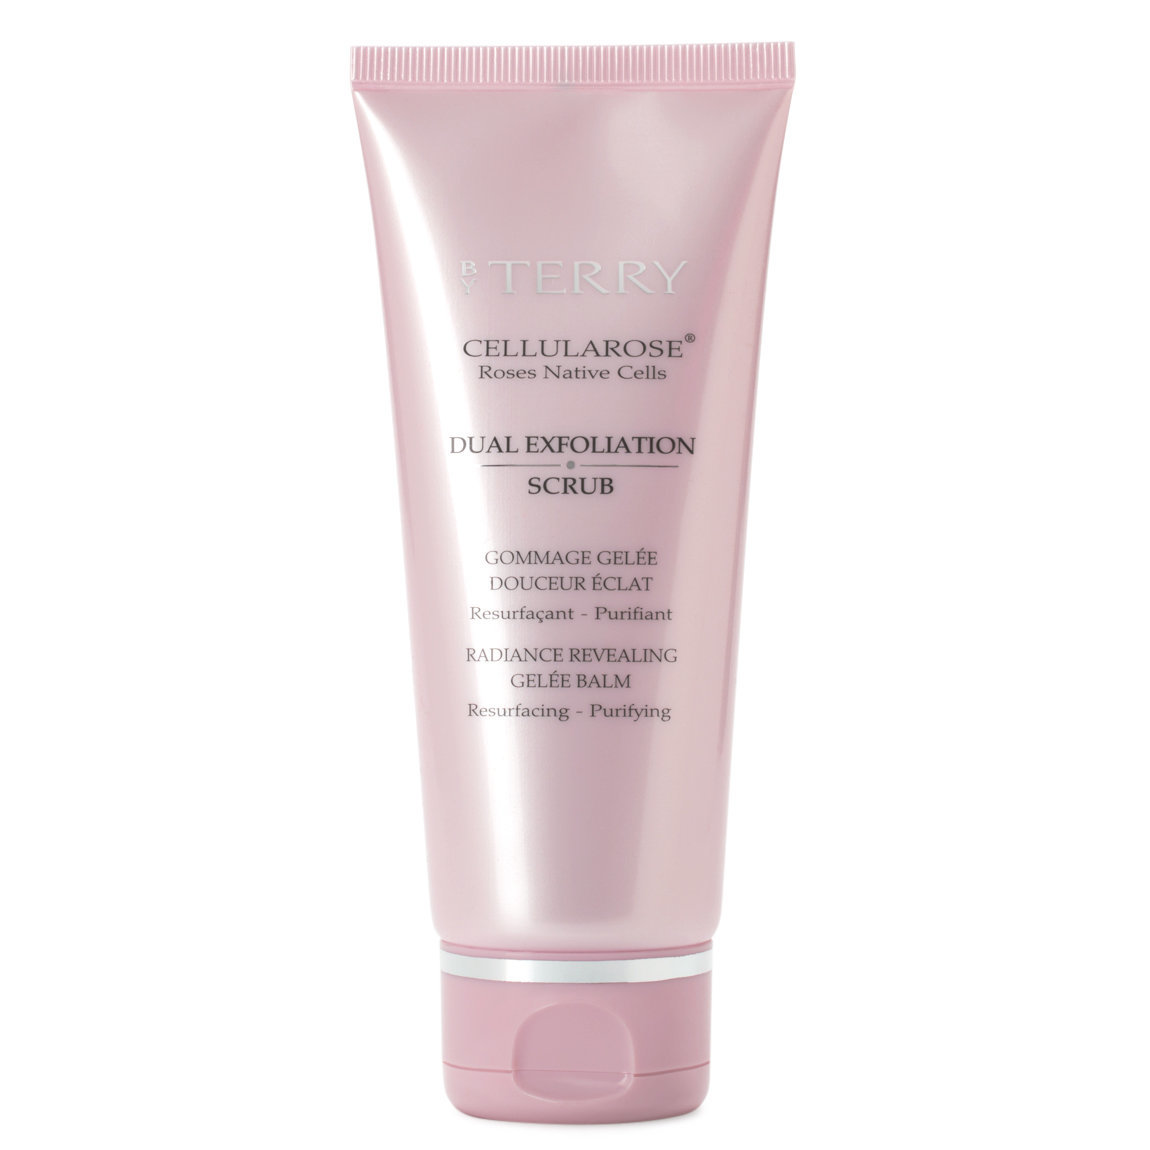 BY TERRY Dual Exfoliation Scrub product smear.